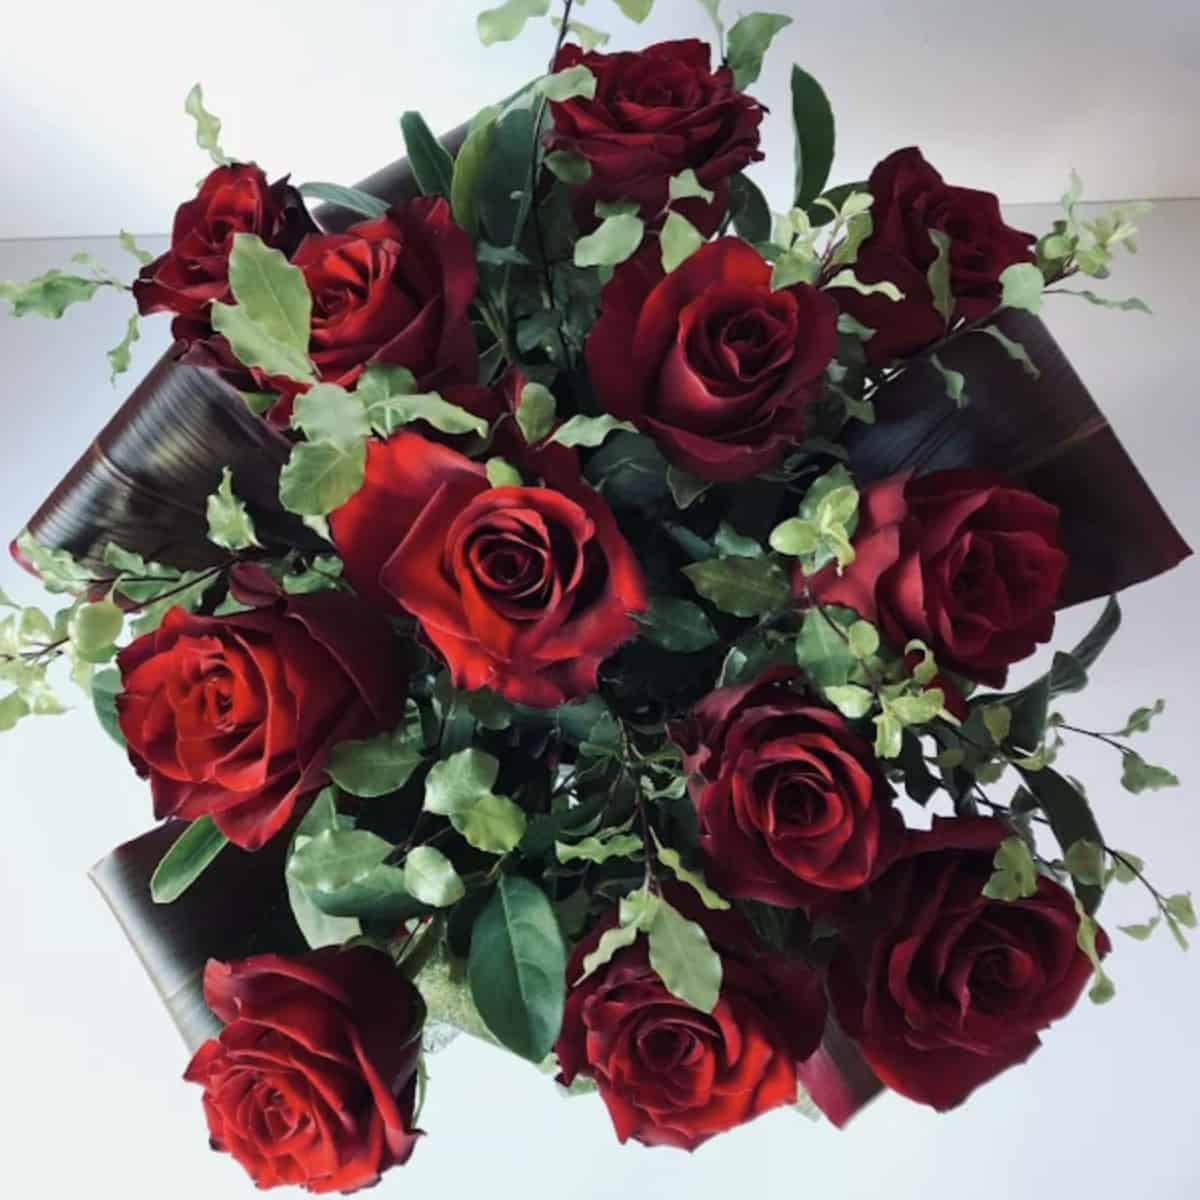 Romantic Bouquet of 12 Beautiful Long Stem Red Roses Valentines Day Flowers Port Macquarie